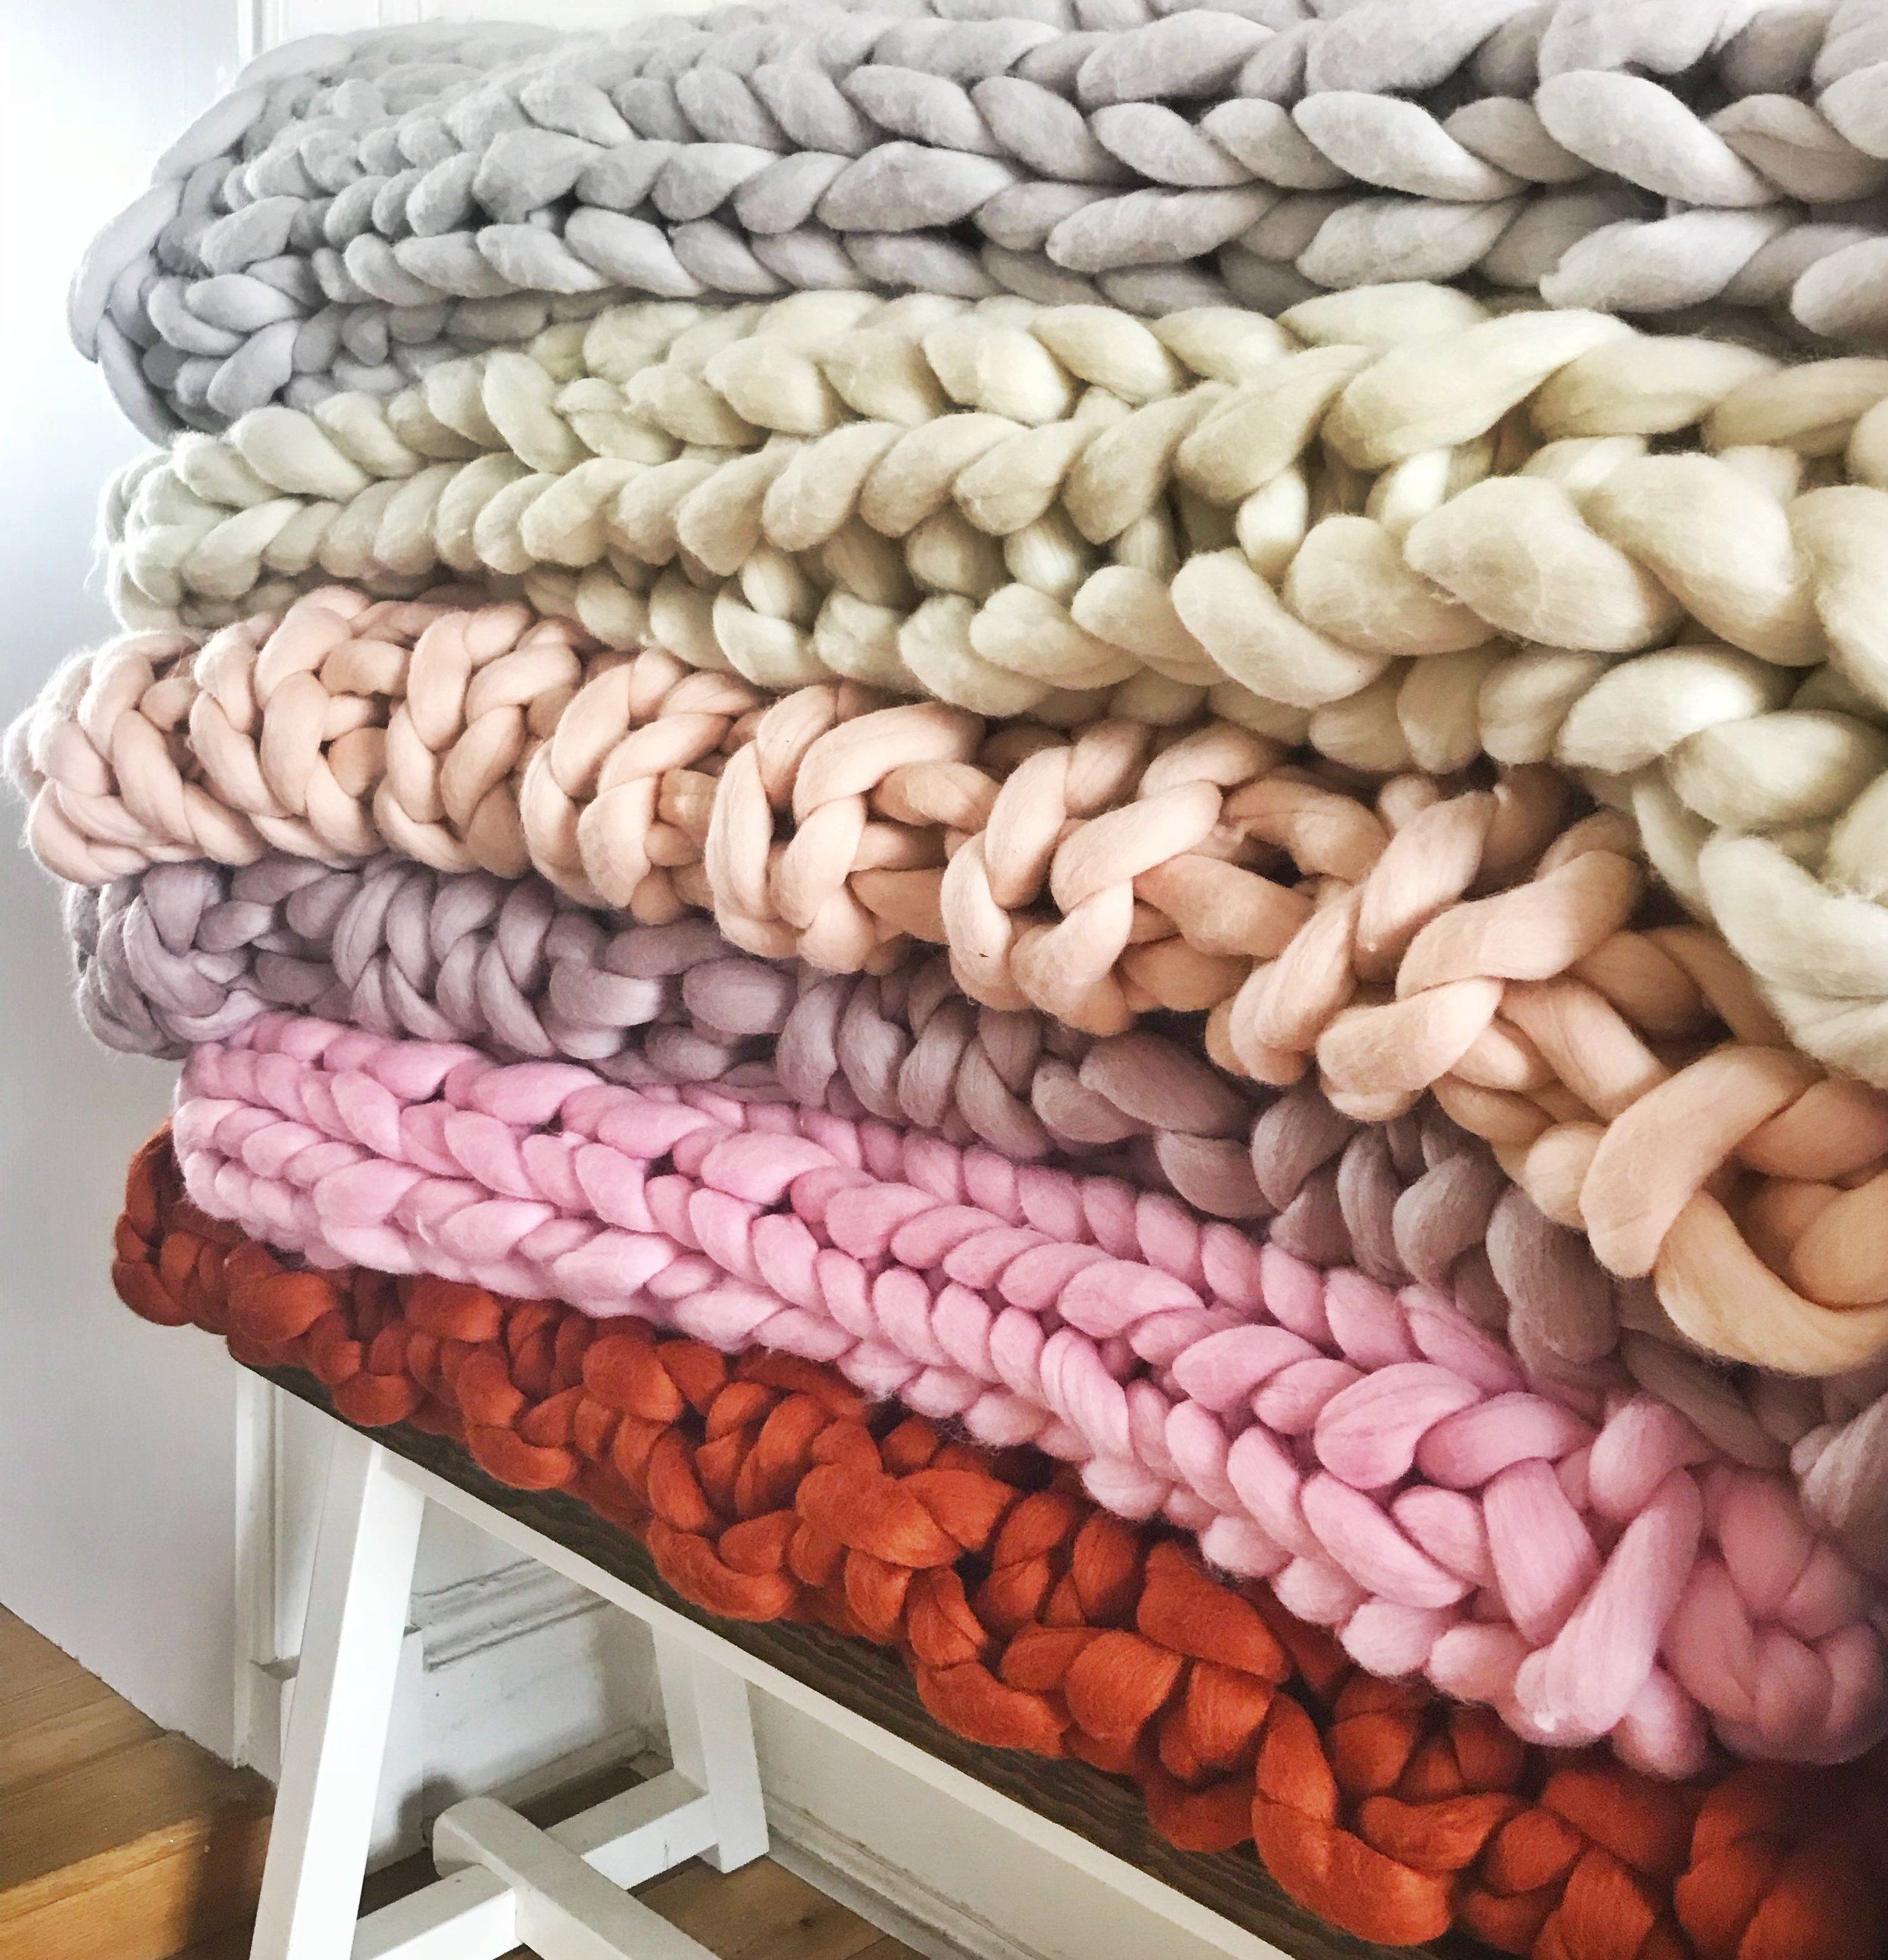 Simply the best. - It's what we do best. Our best sellers. Our super luxurious 100% merino wool, hand knit chunky knit blankets, throws and bed runners. Completely customisable. You choose colour, size and stitch, we do the rest. Click HERE to shop.